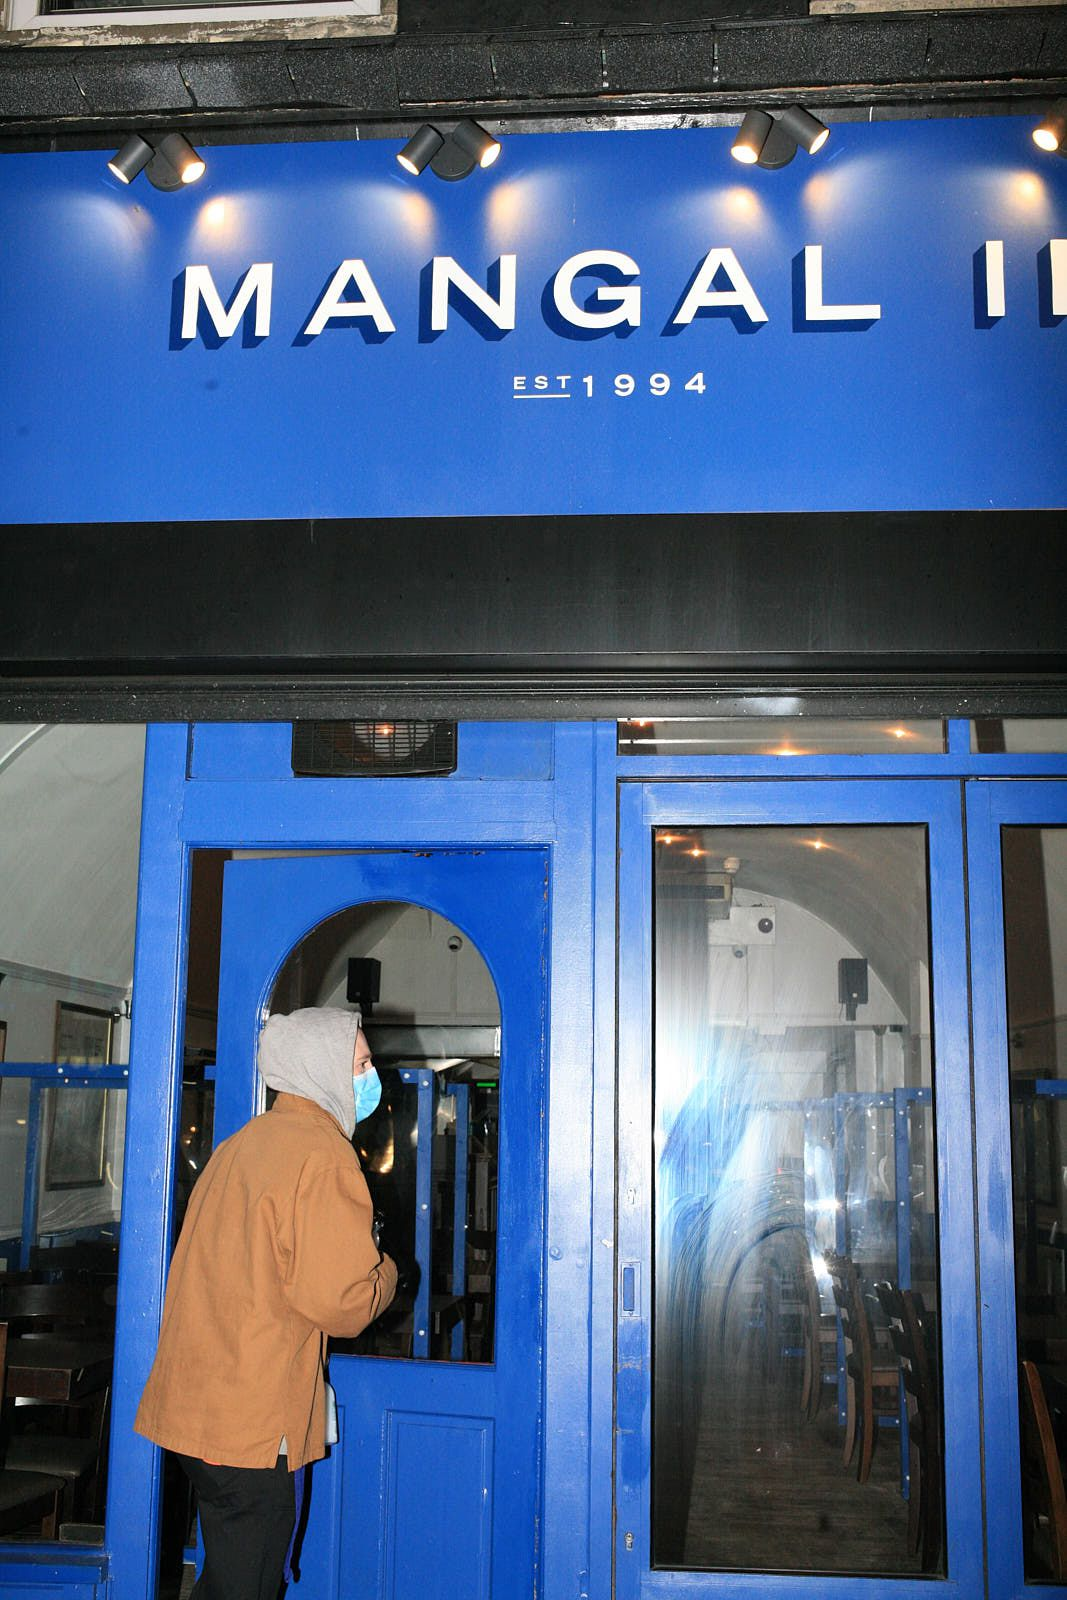 A customer in a mask enters Mangal 2 on the day it reopened after the second coronavirus lockdown in London, December 2020